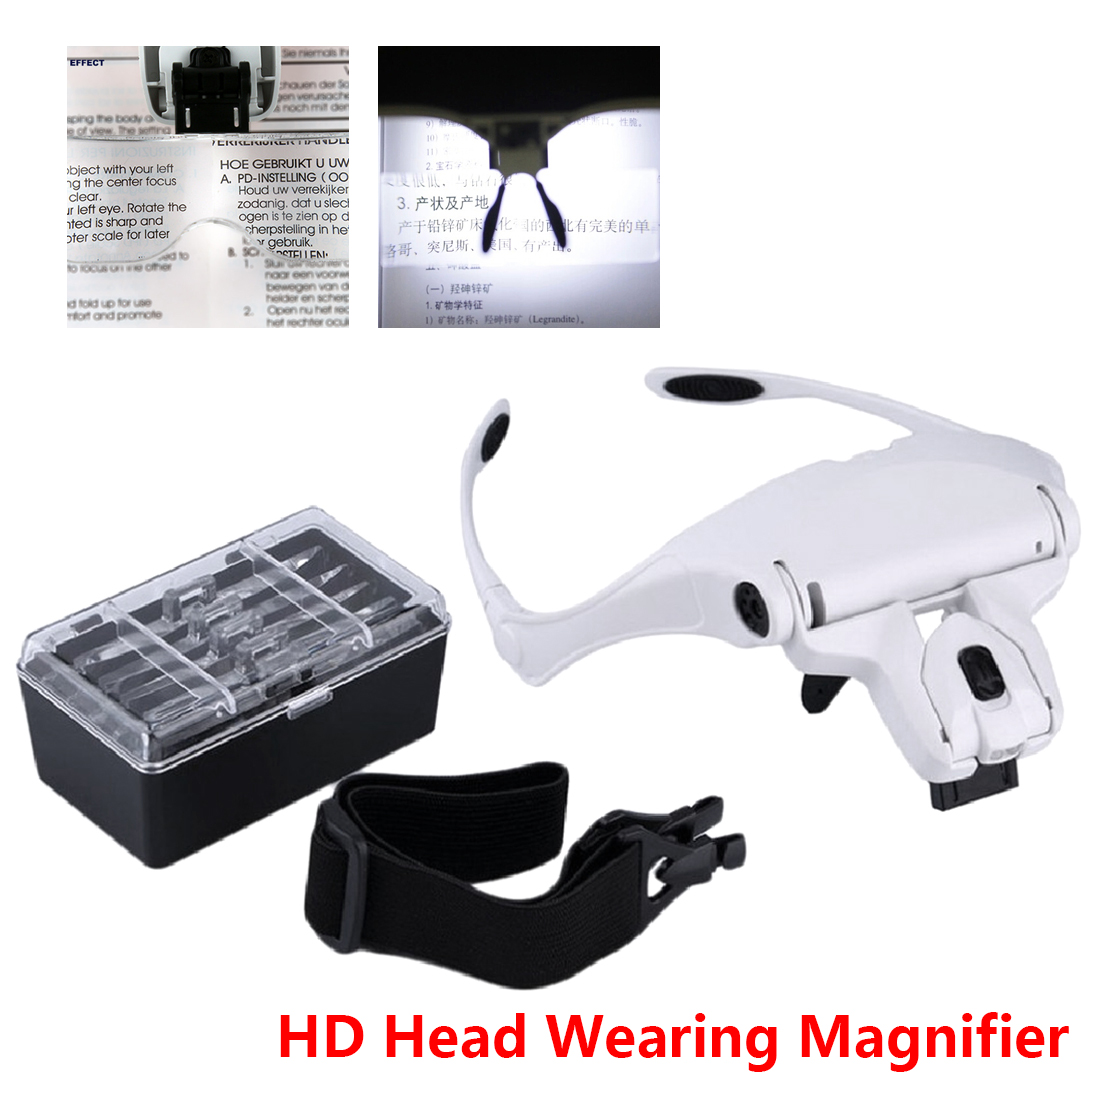 Headband Magnifying Glass Creative 1.0X 1.5X 2.0X 2.5X 3.5X 5 Lens Adjustable LoupeMagnifier With LED Magnifying Glasses